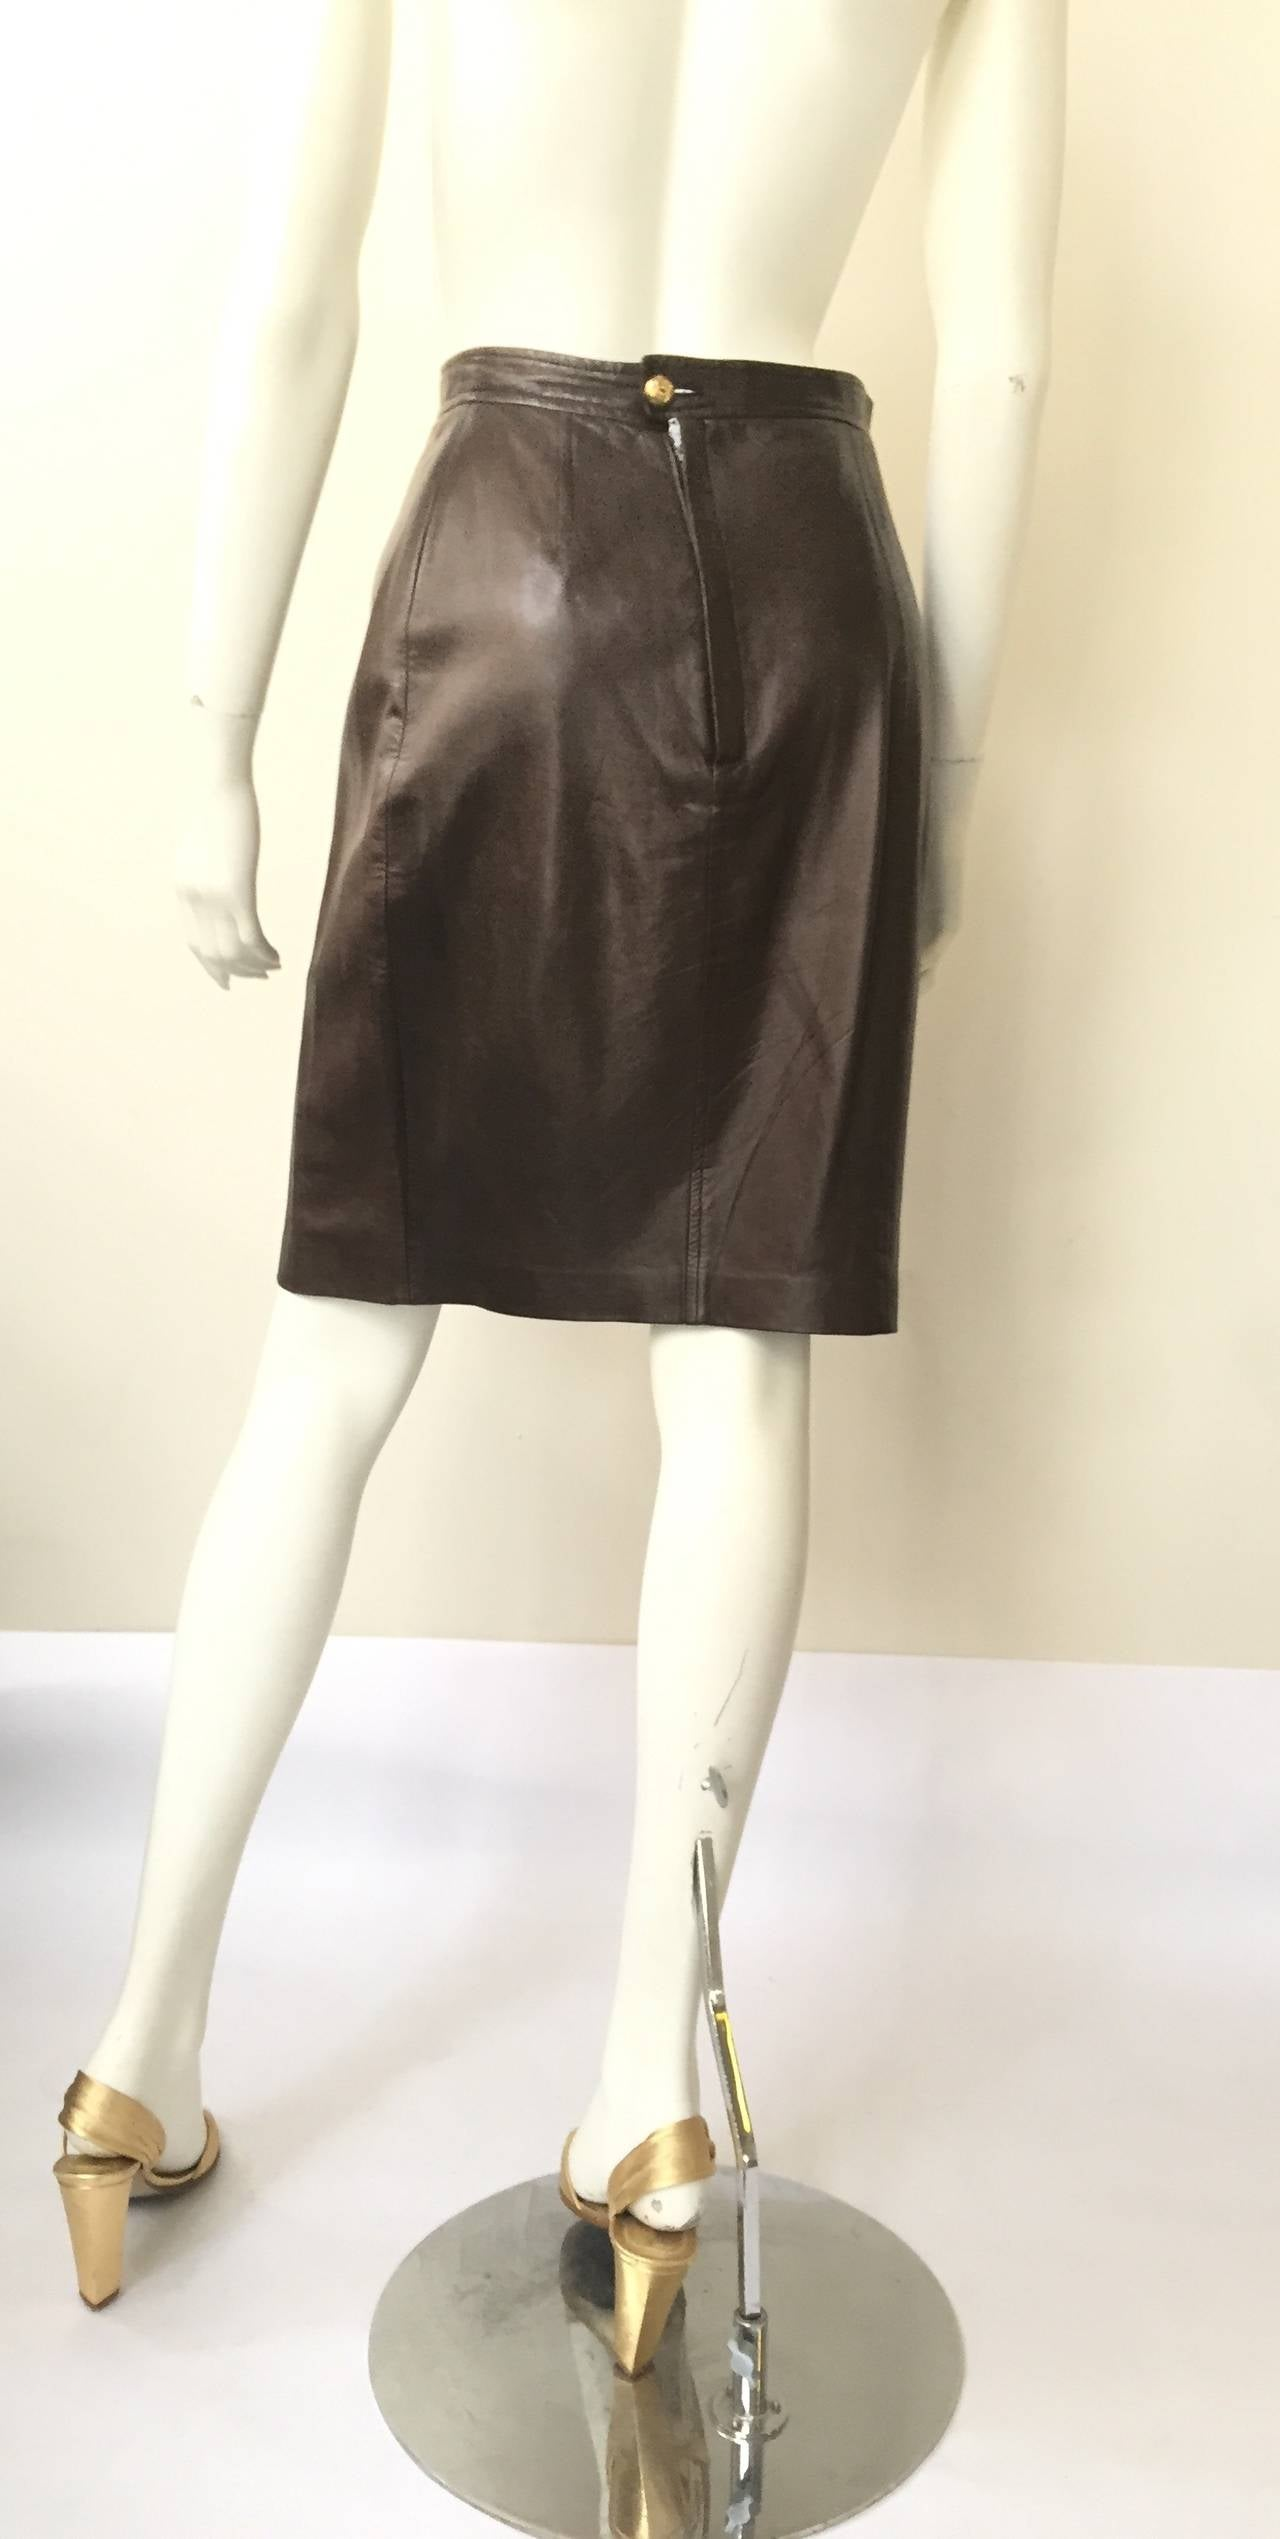 Chanel 80s brown leather skirt size 6. 4